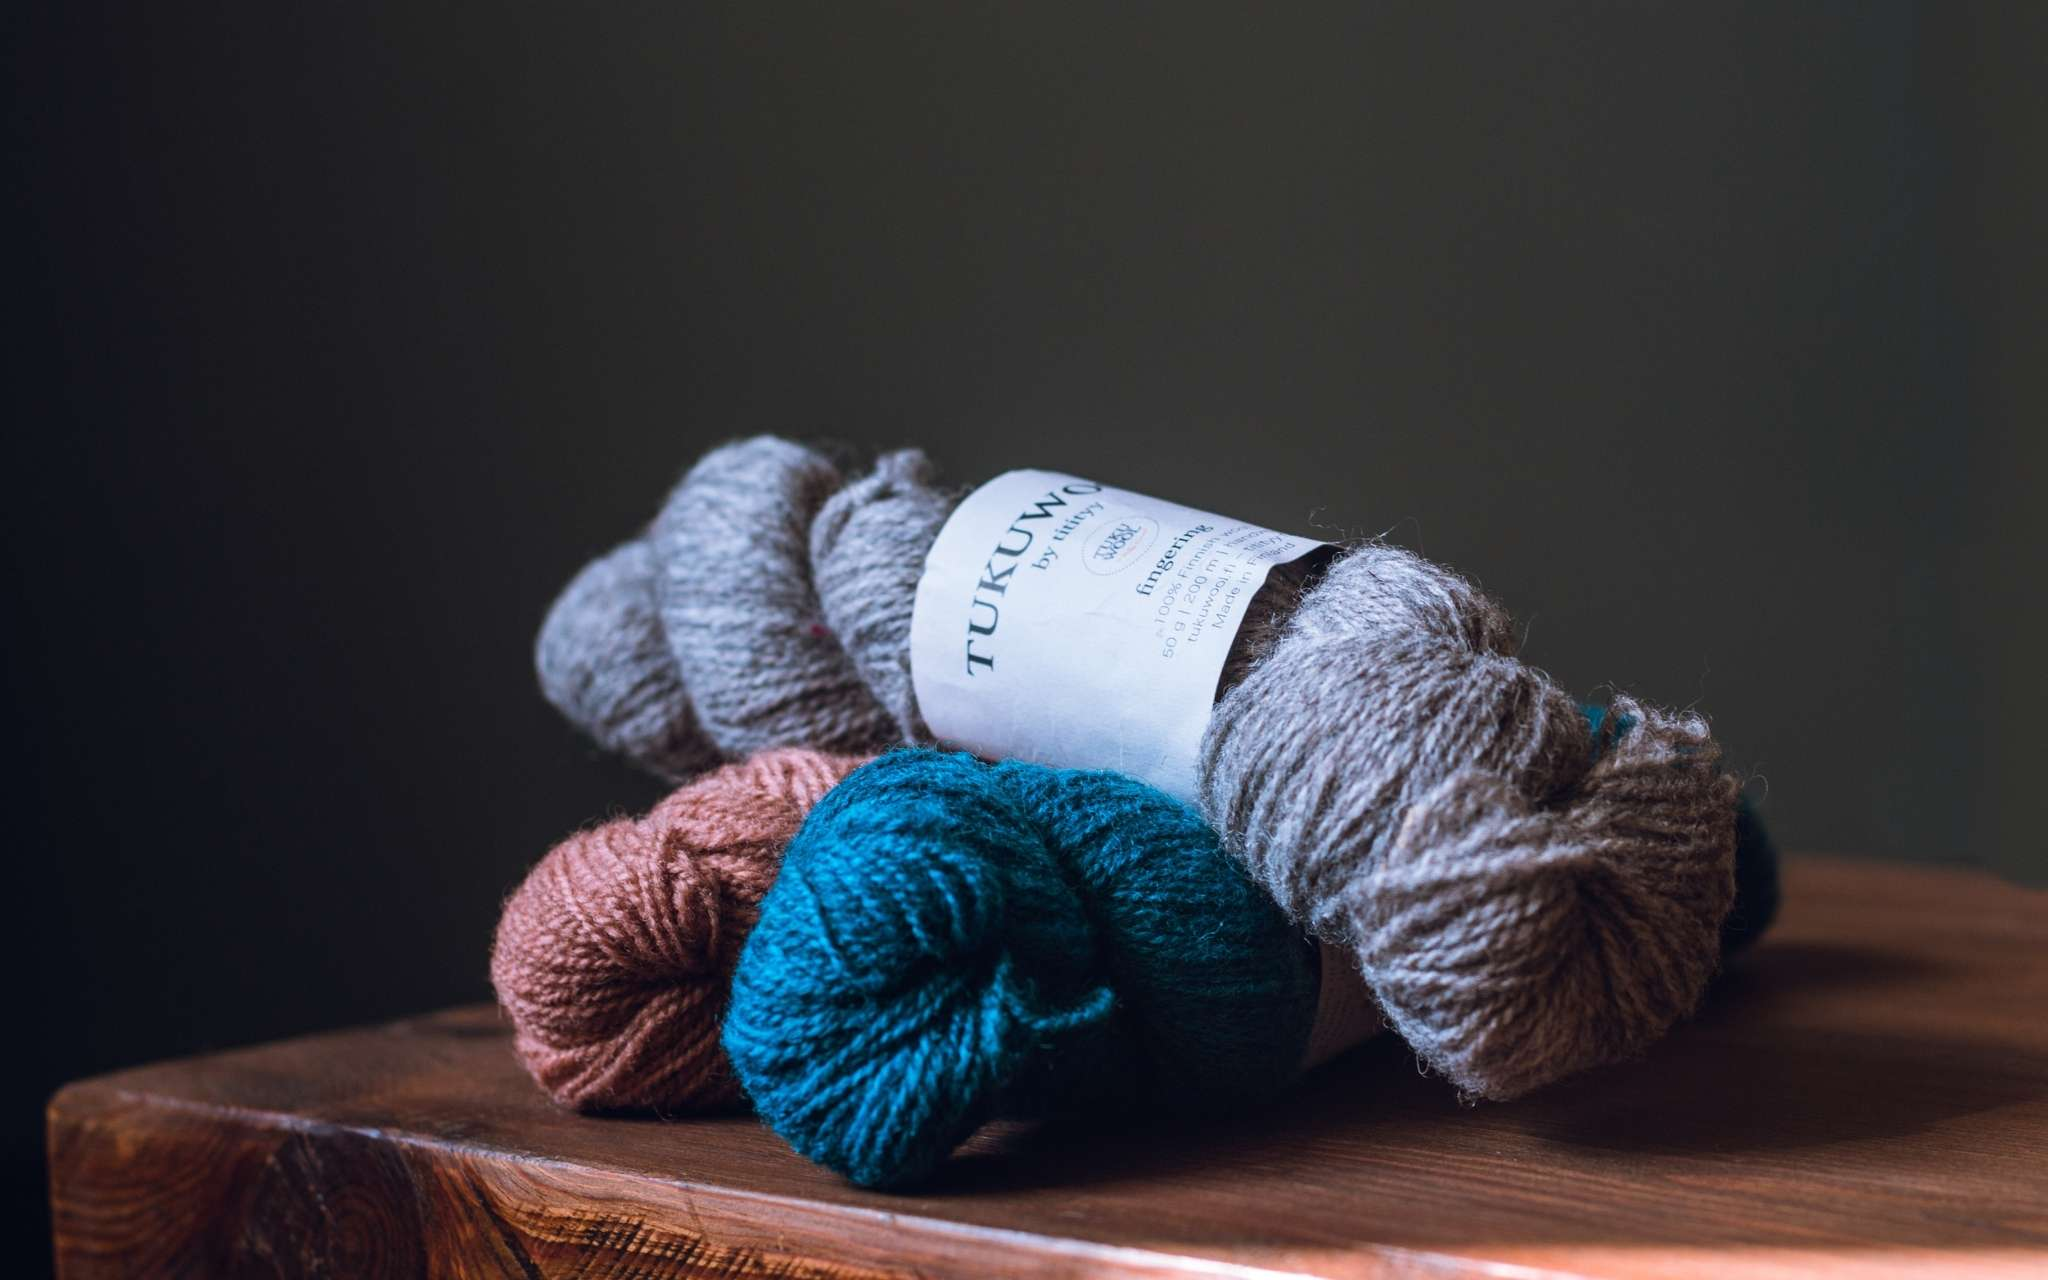 Three skeins of yarn in grey, blue and coral lie piled on top of each other on a table.